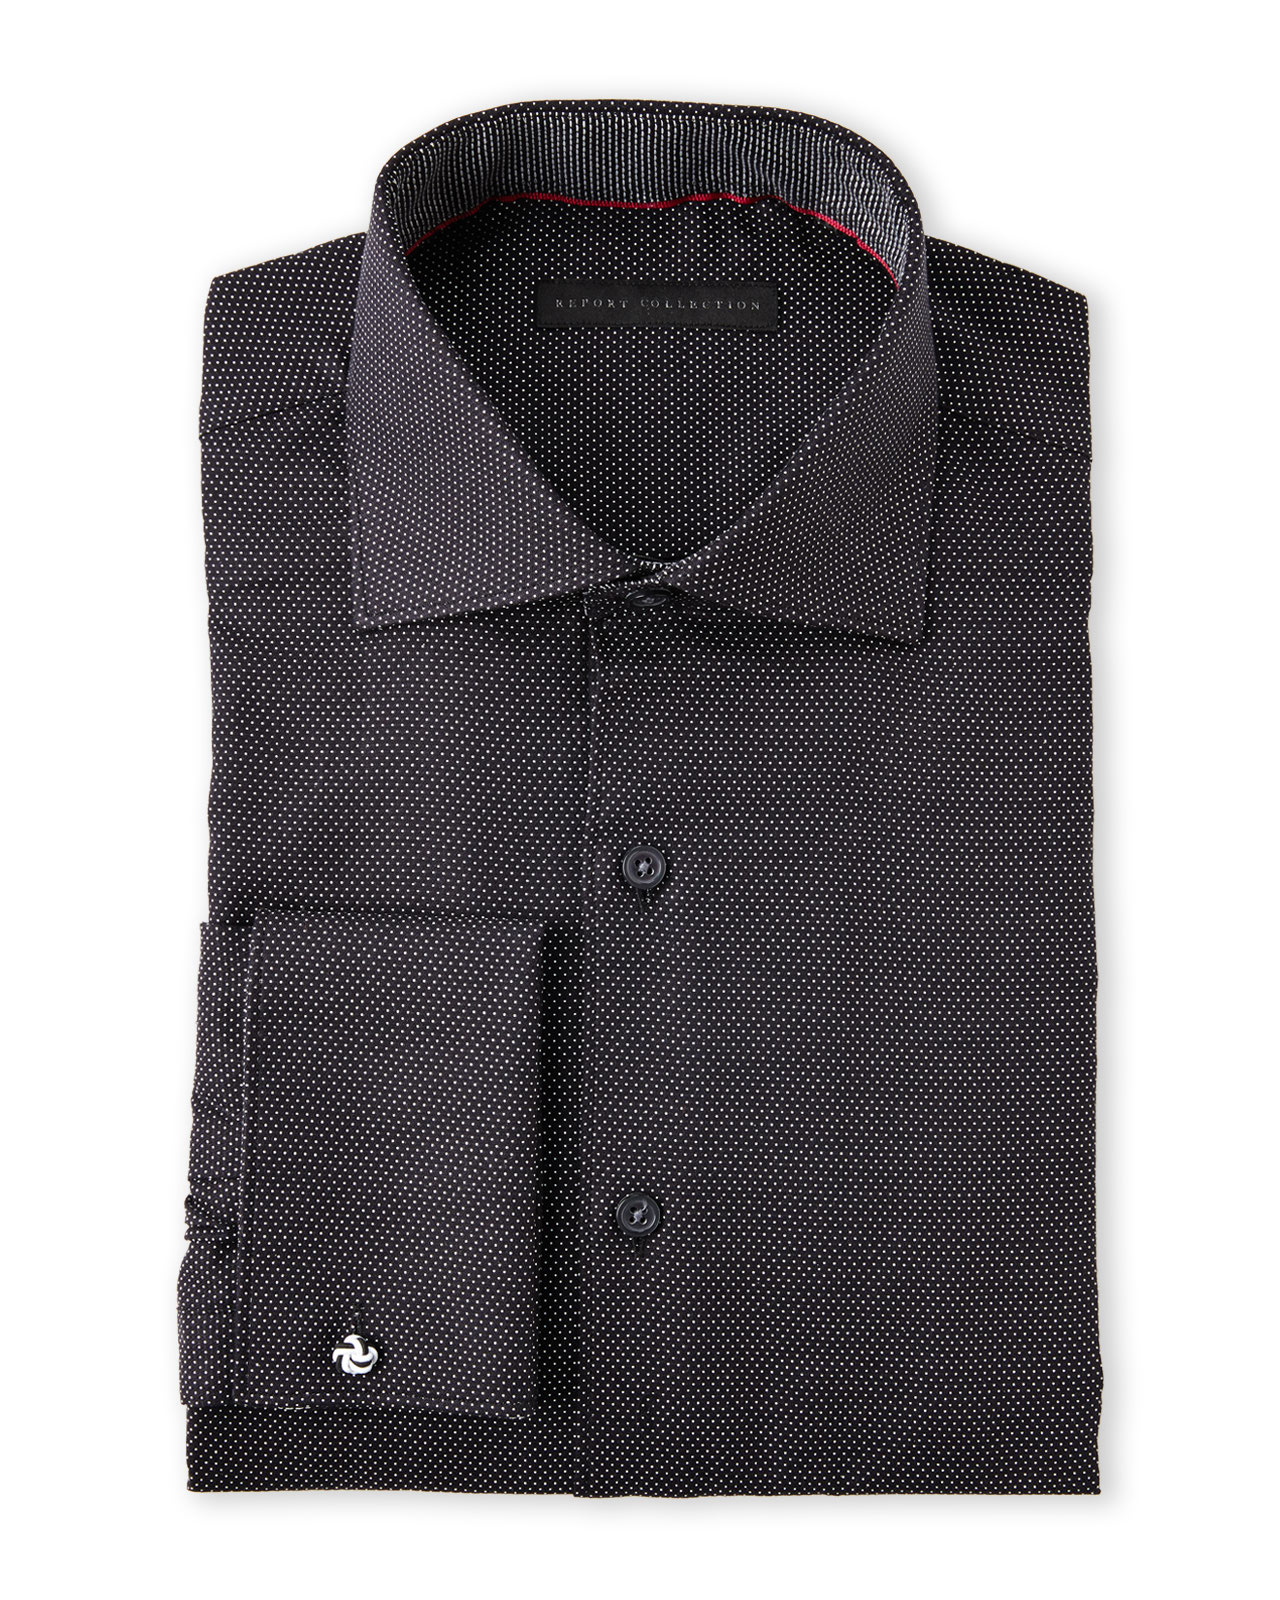 Report Collection Black French Cuff Dress Shirt In Black